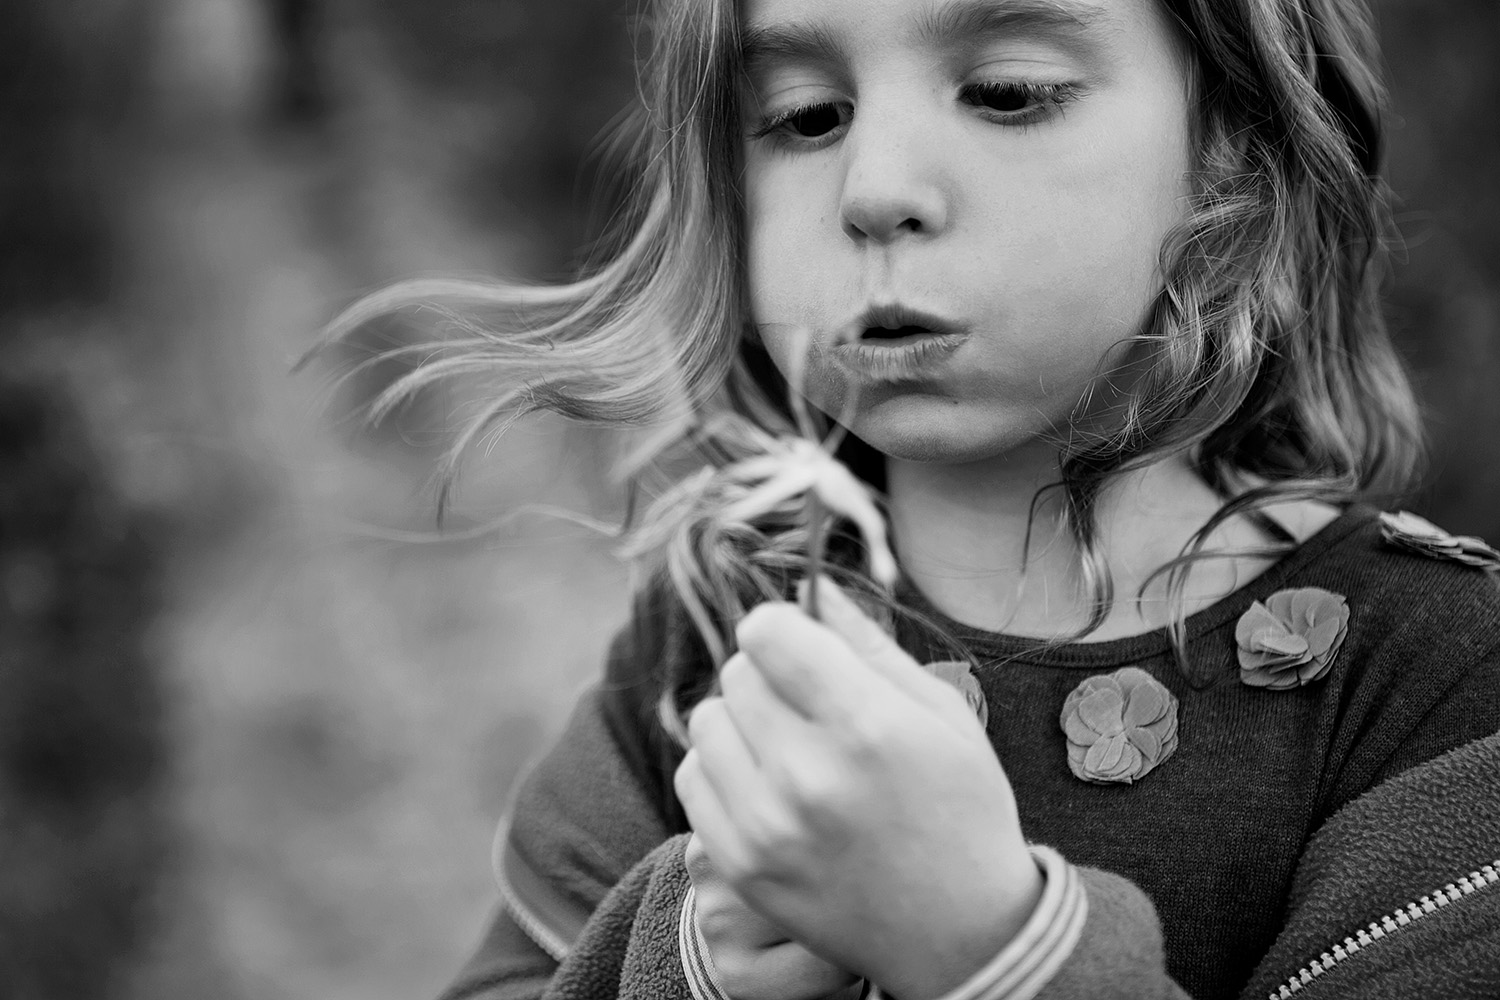 Girl making a wish on a dandelion photographed by Dana Pugh